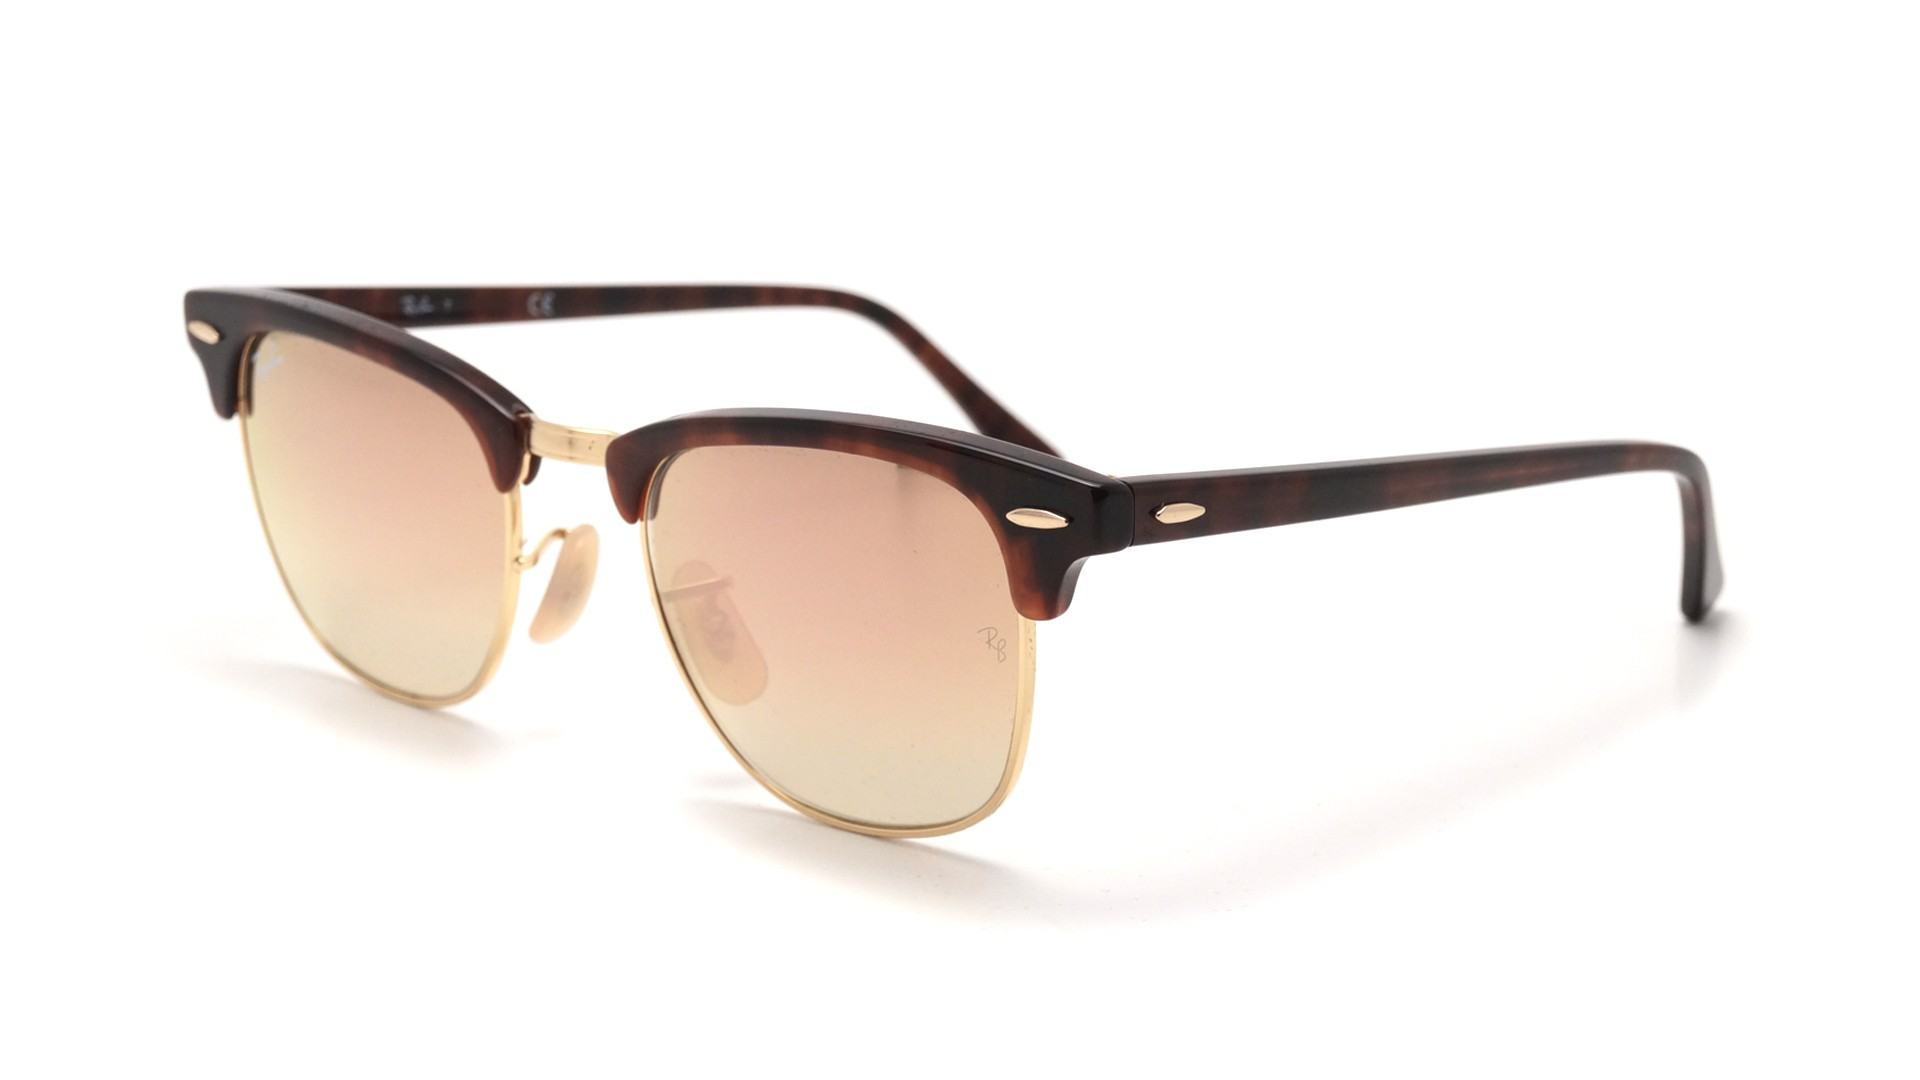 ray ban rb3016 clubmaster classic w0365  Ban Clubmaster Tortoise RB3016 990/7O 49-21 Degraded